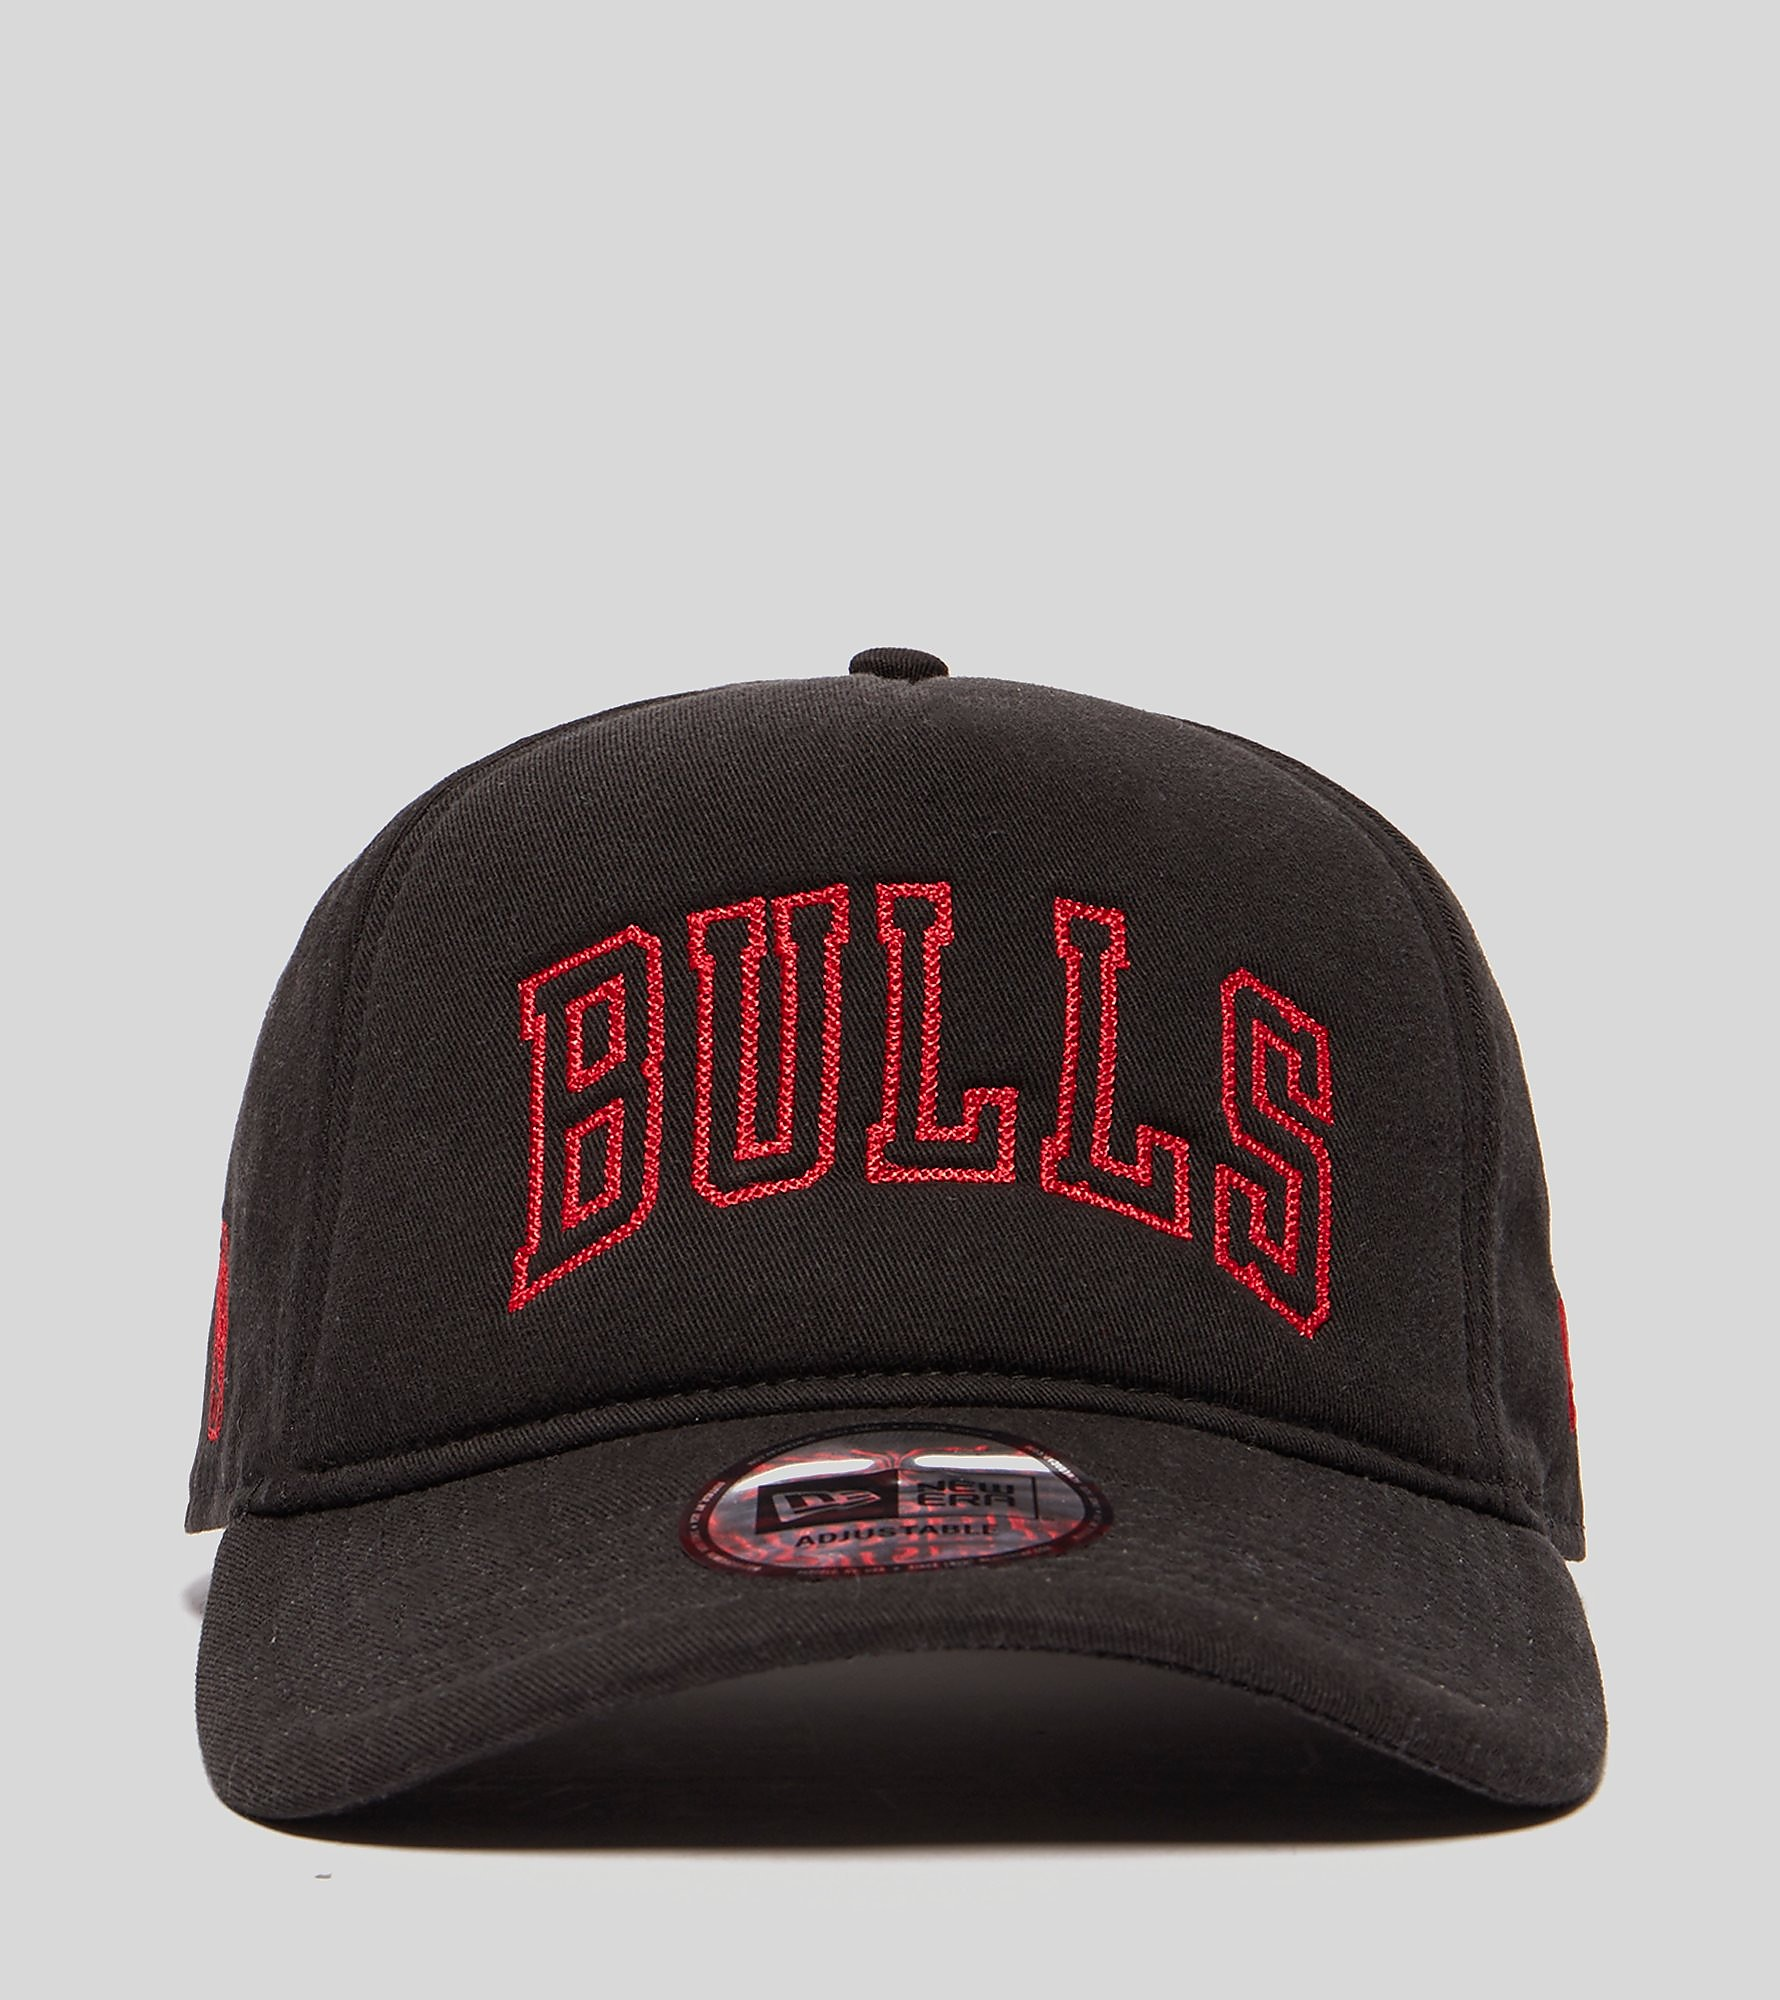 New Era 9FORTY Bulls Trucker Cap